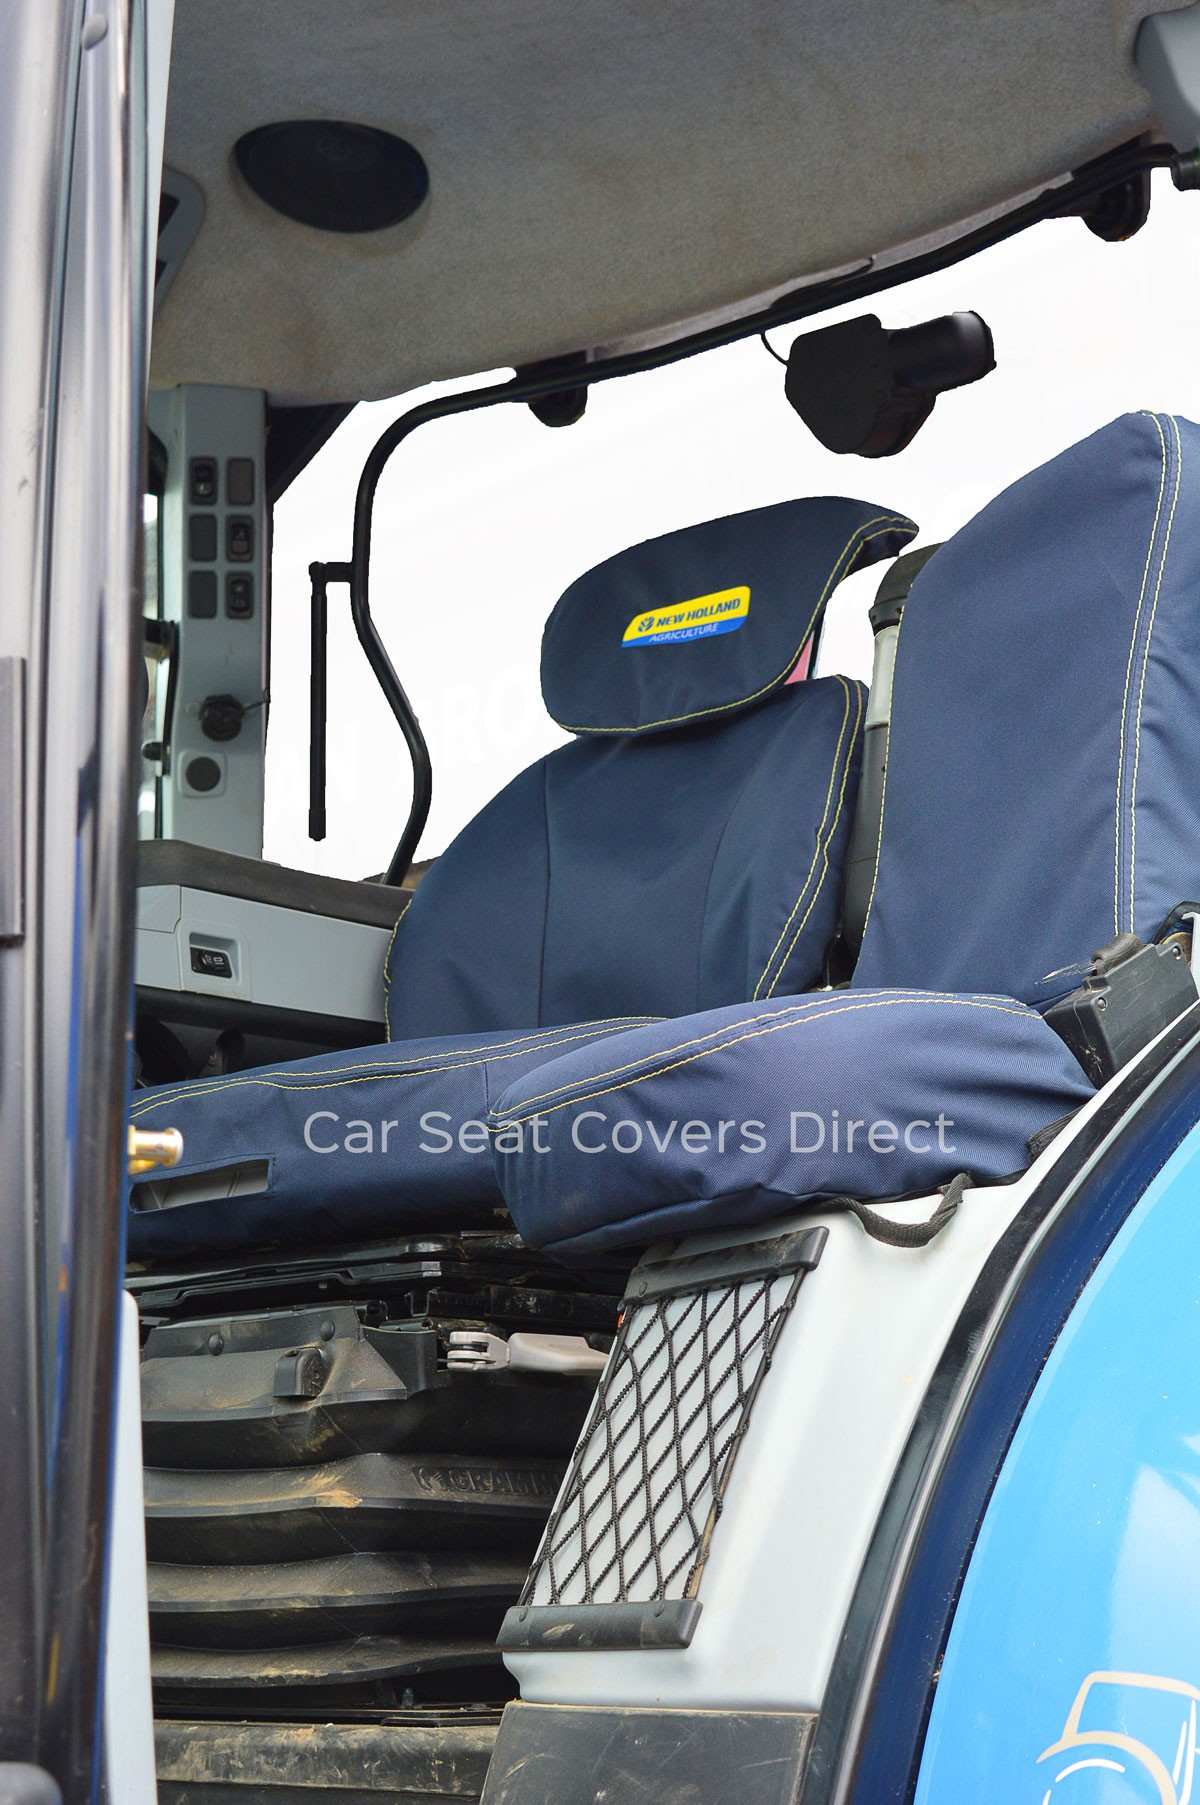 Tractor Seat And Seat Covers : New holland tractor seat covers car direct